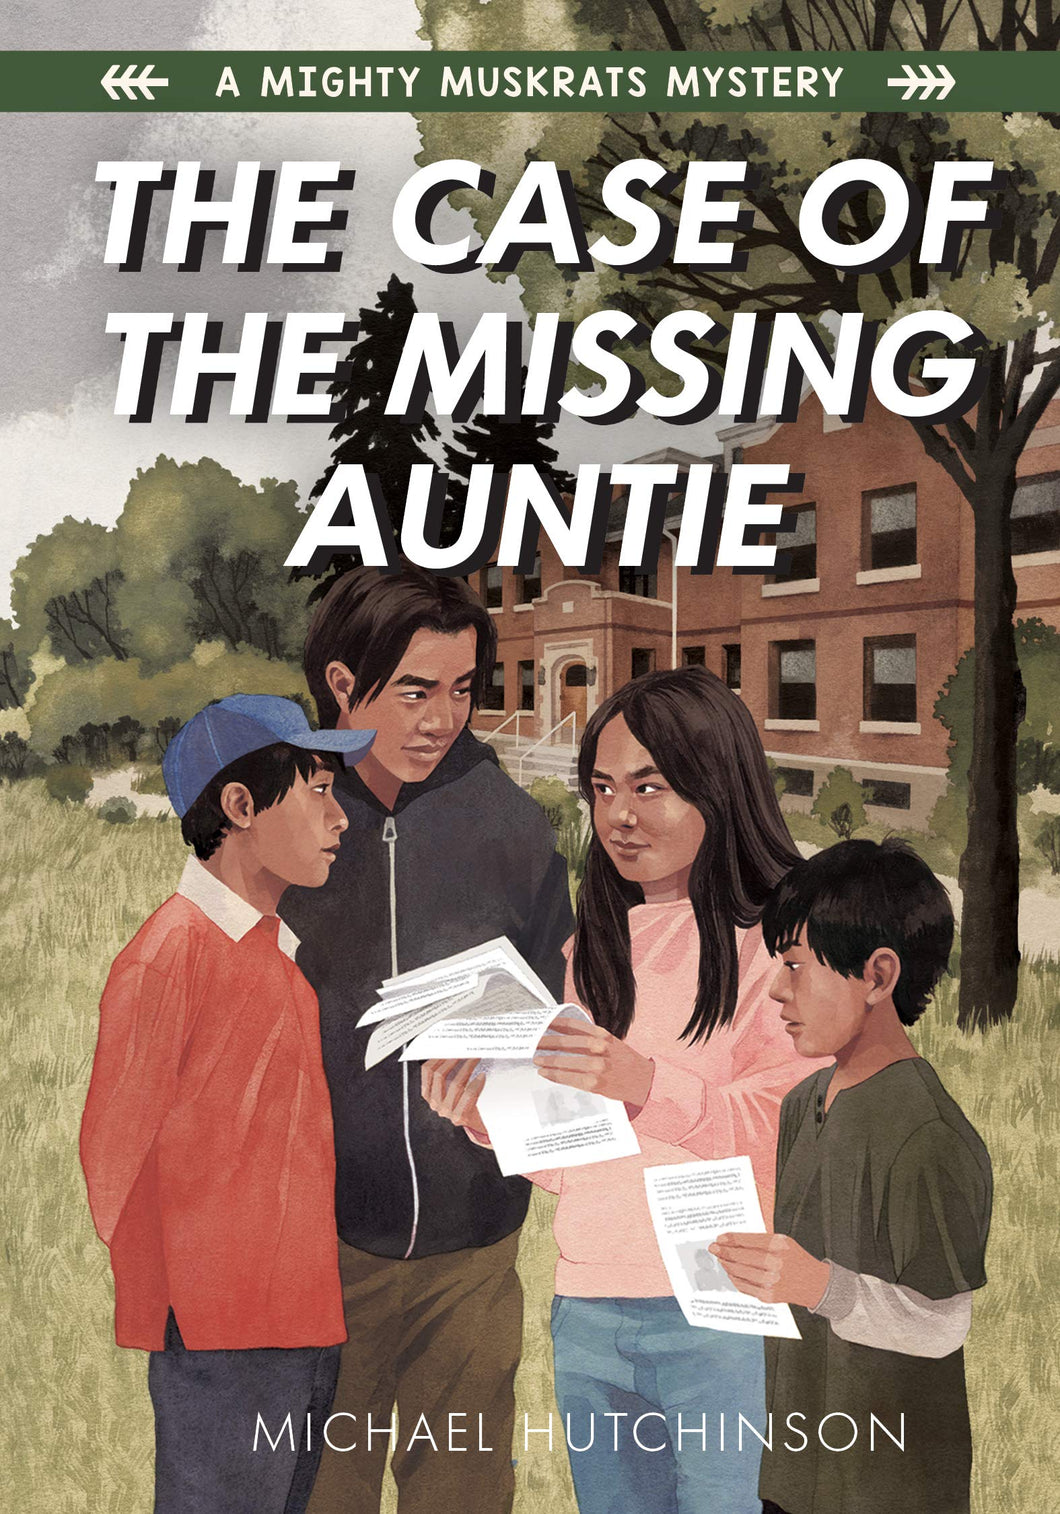 The Case of the Missing Auntie [Michael Hutchinson]